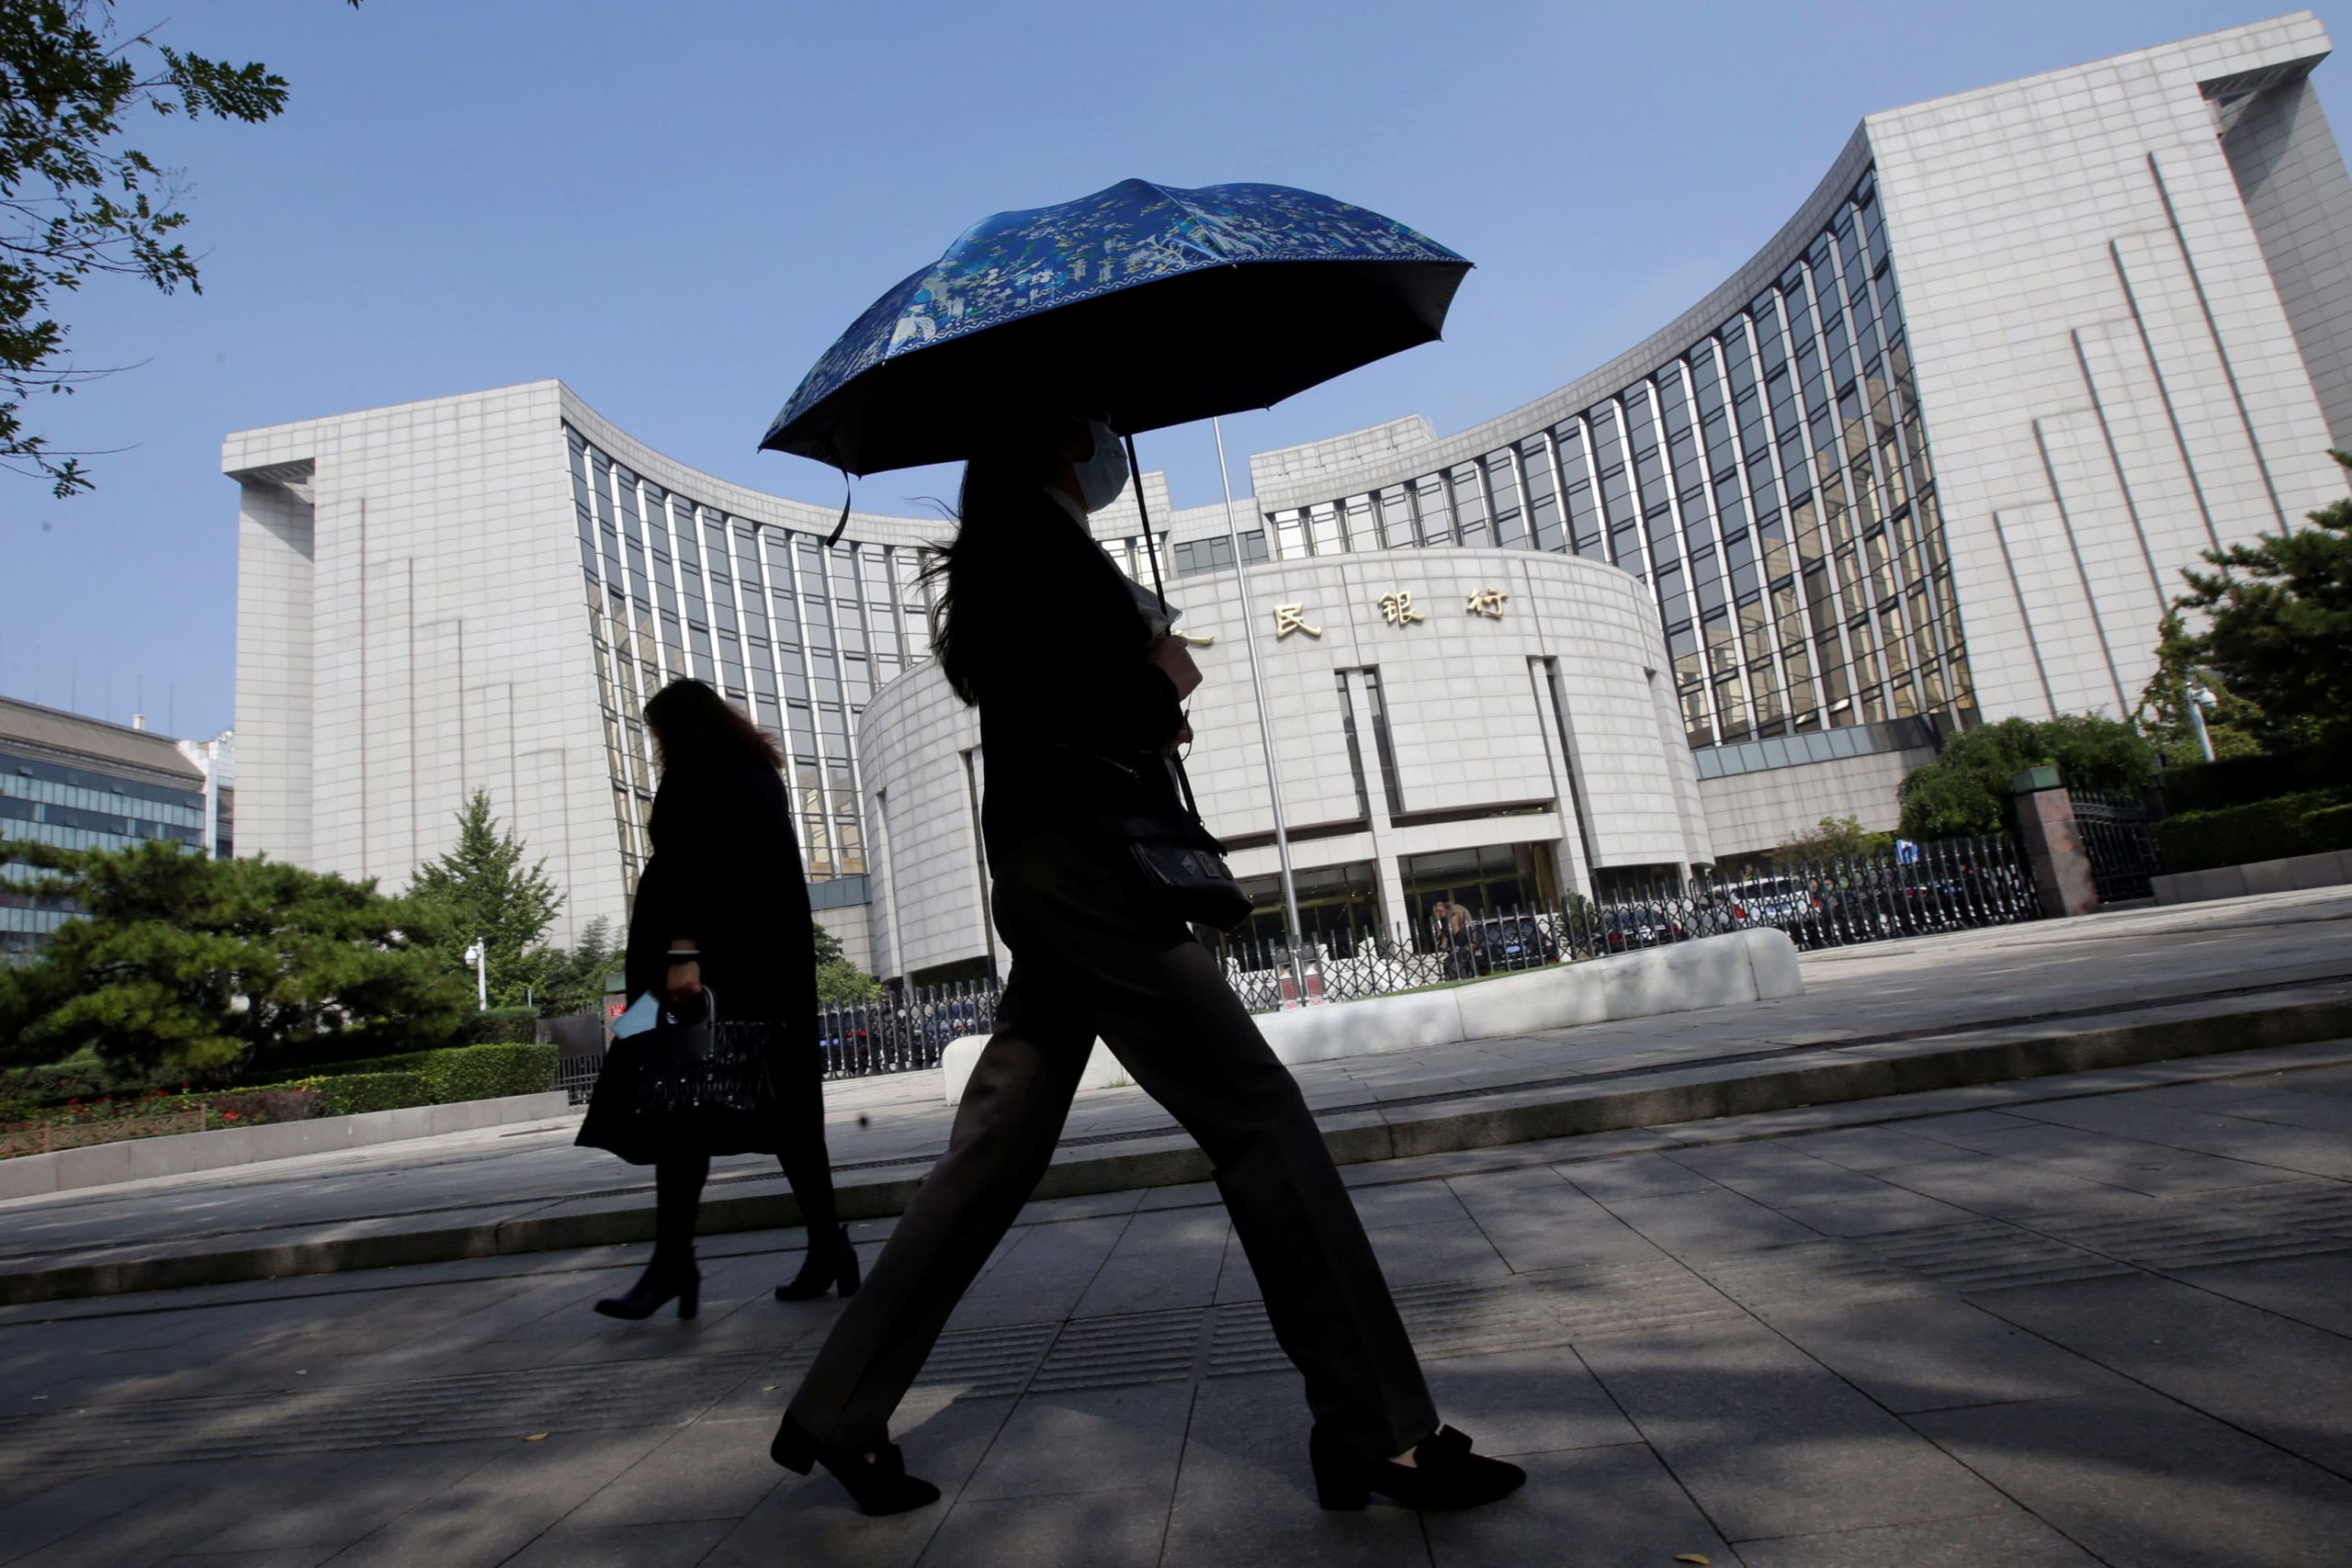 China's central bank warns of financial risks, including potential defaults